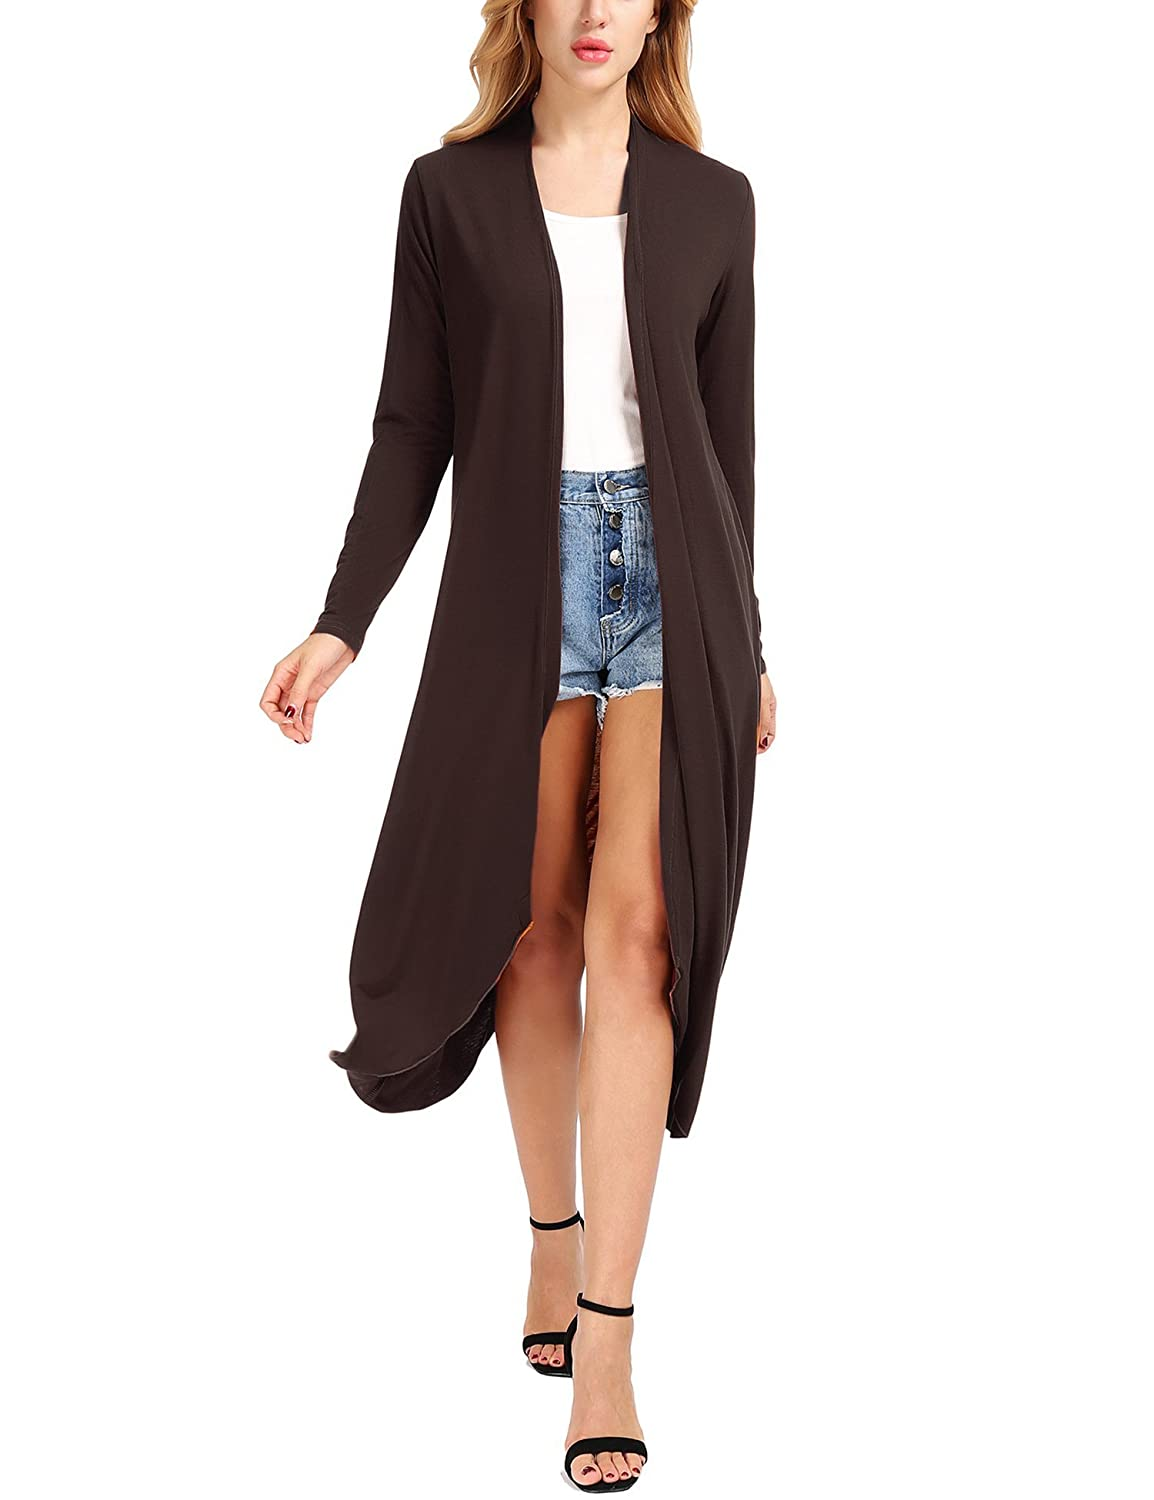 Coffee Uniboutique Women's Casual Open Front Long Sleeve Cardigans Sweater (SXXXL)